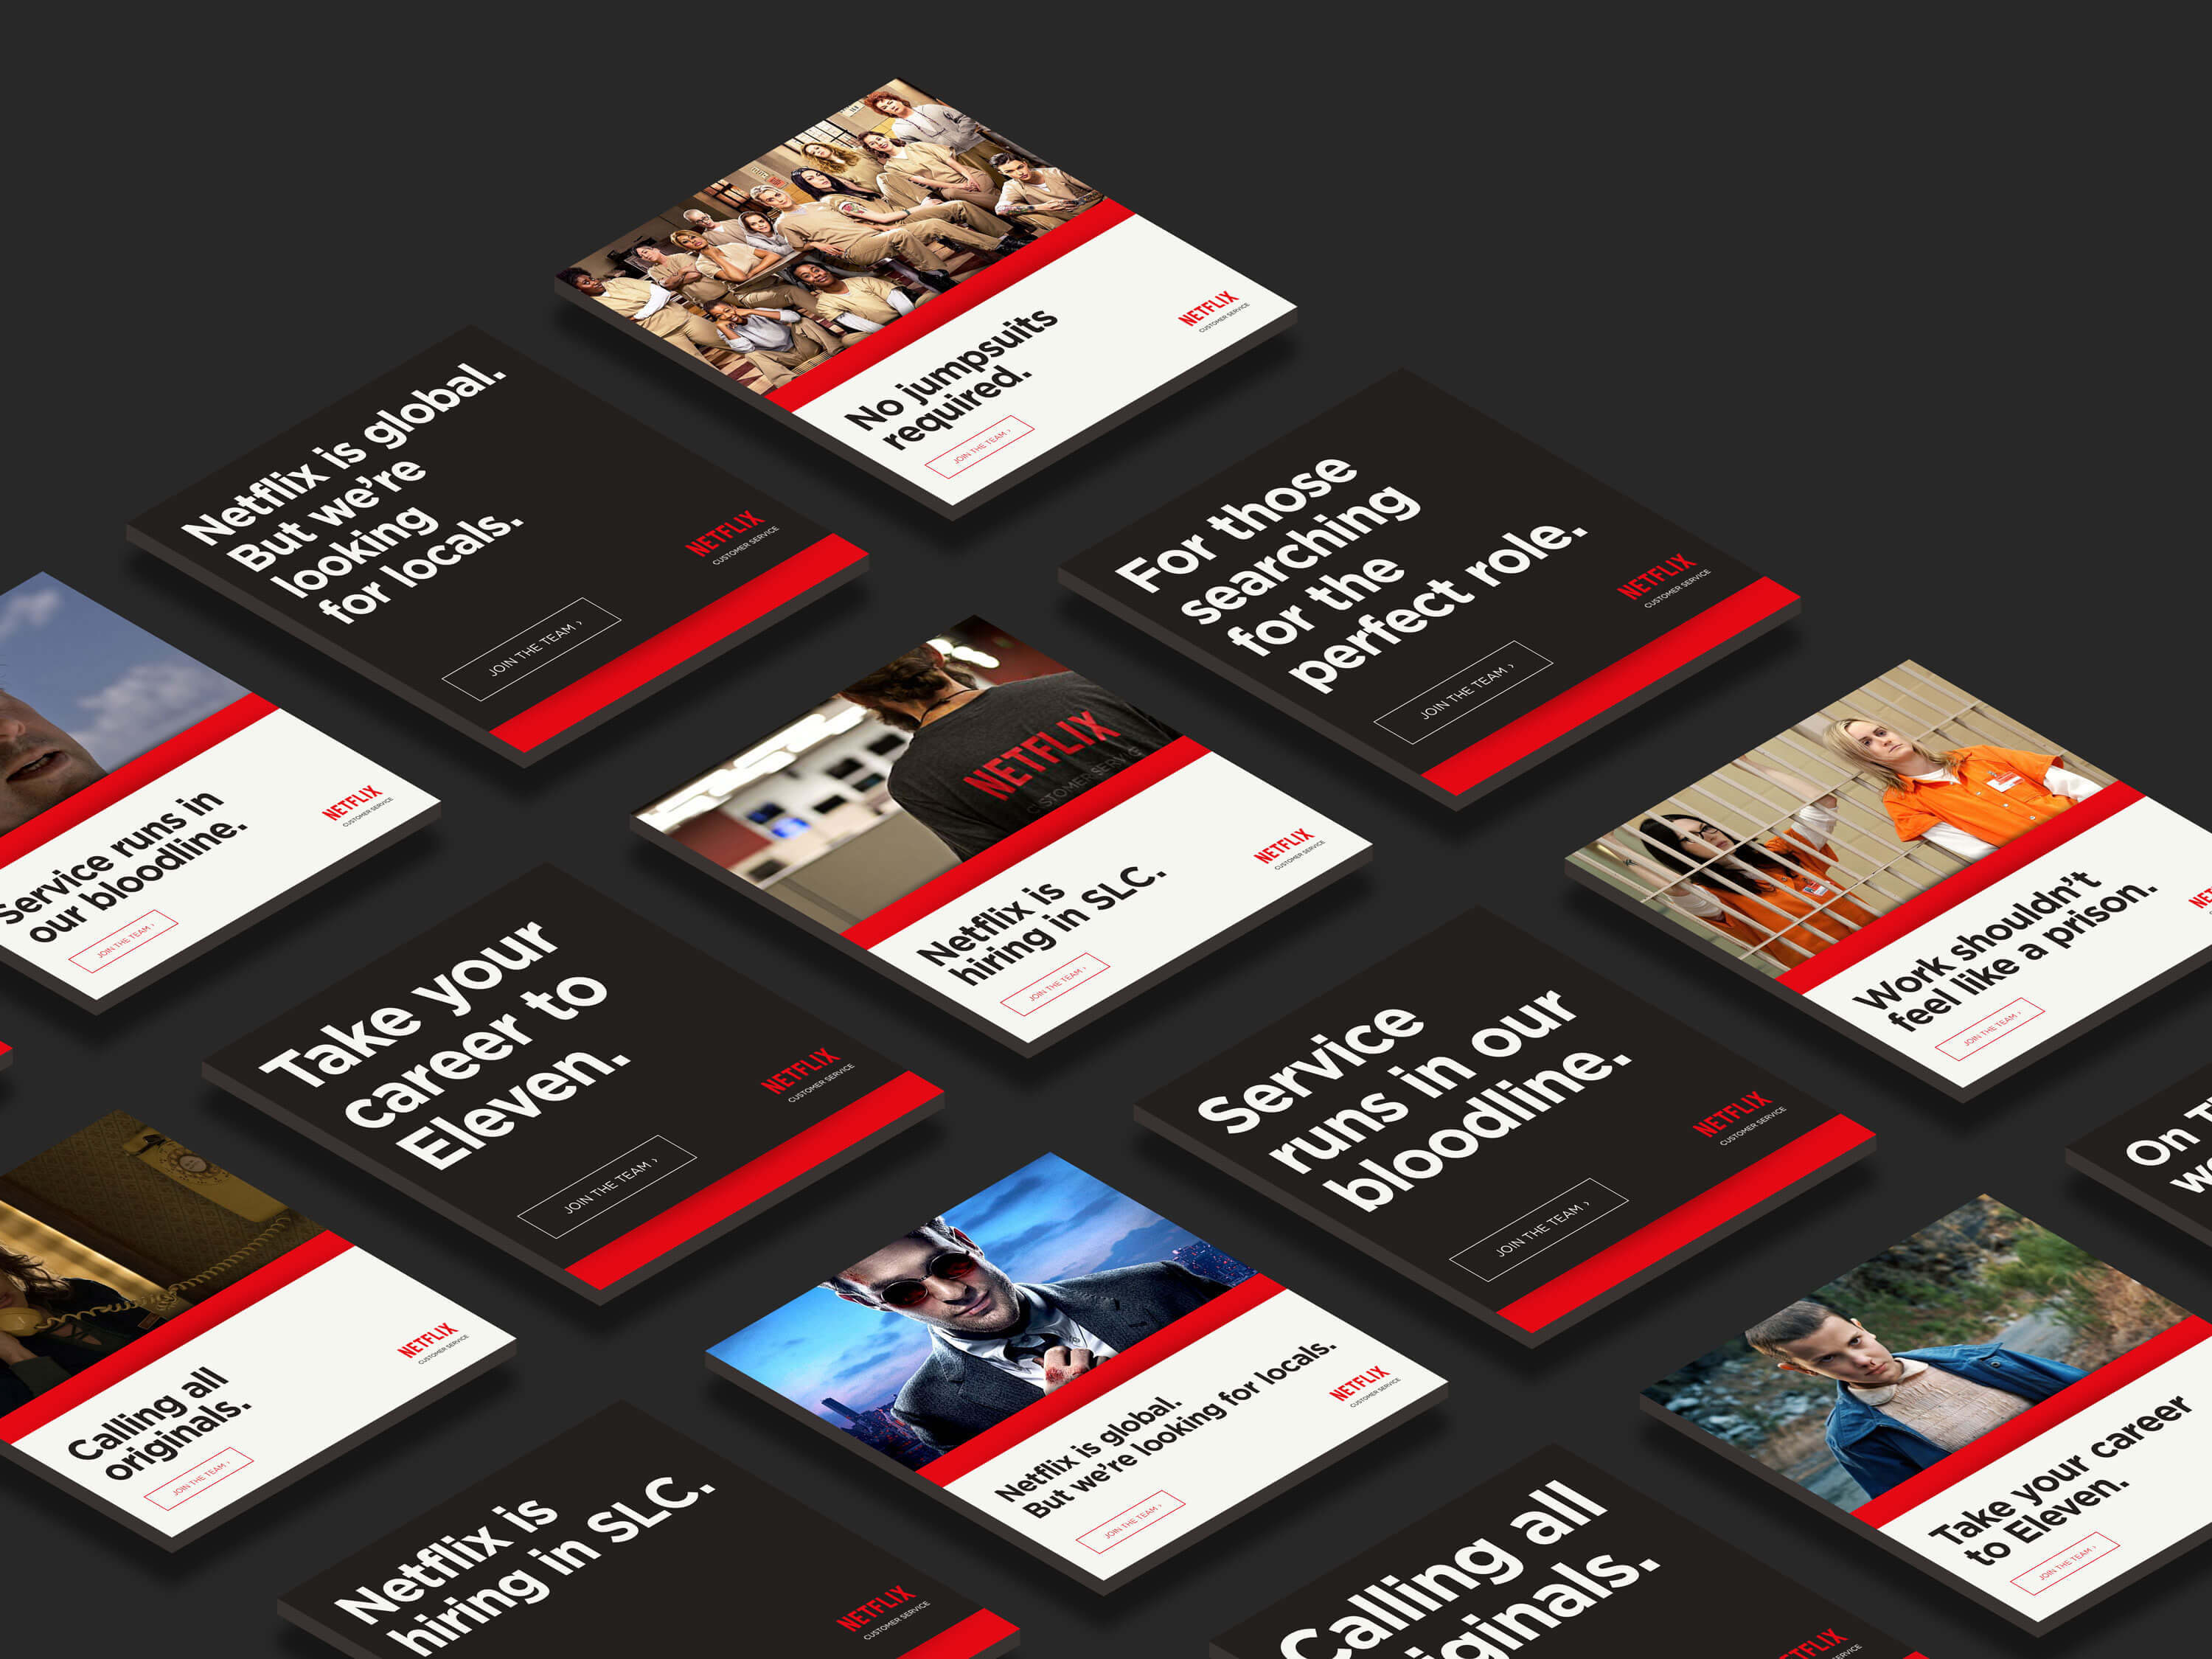 netflix strategy Netflix has a stronghold over the hearts and eyes of many customers (and future customers) across generations here's what marketers can learn from this content behemoth marketing takeaways from netflix's content strategy.